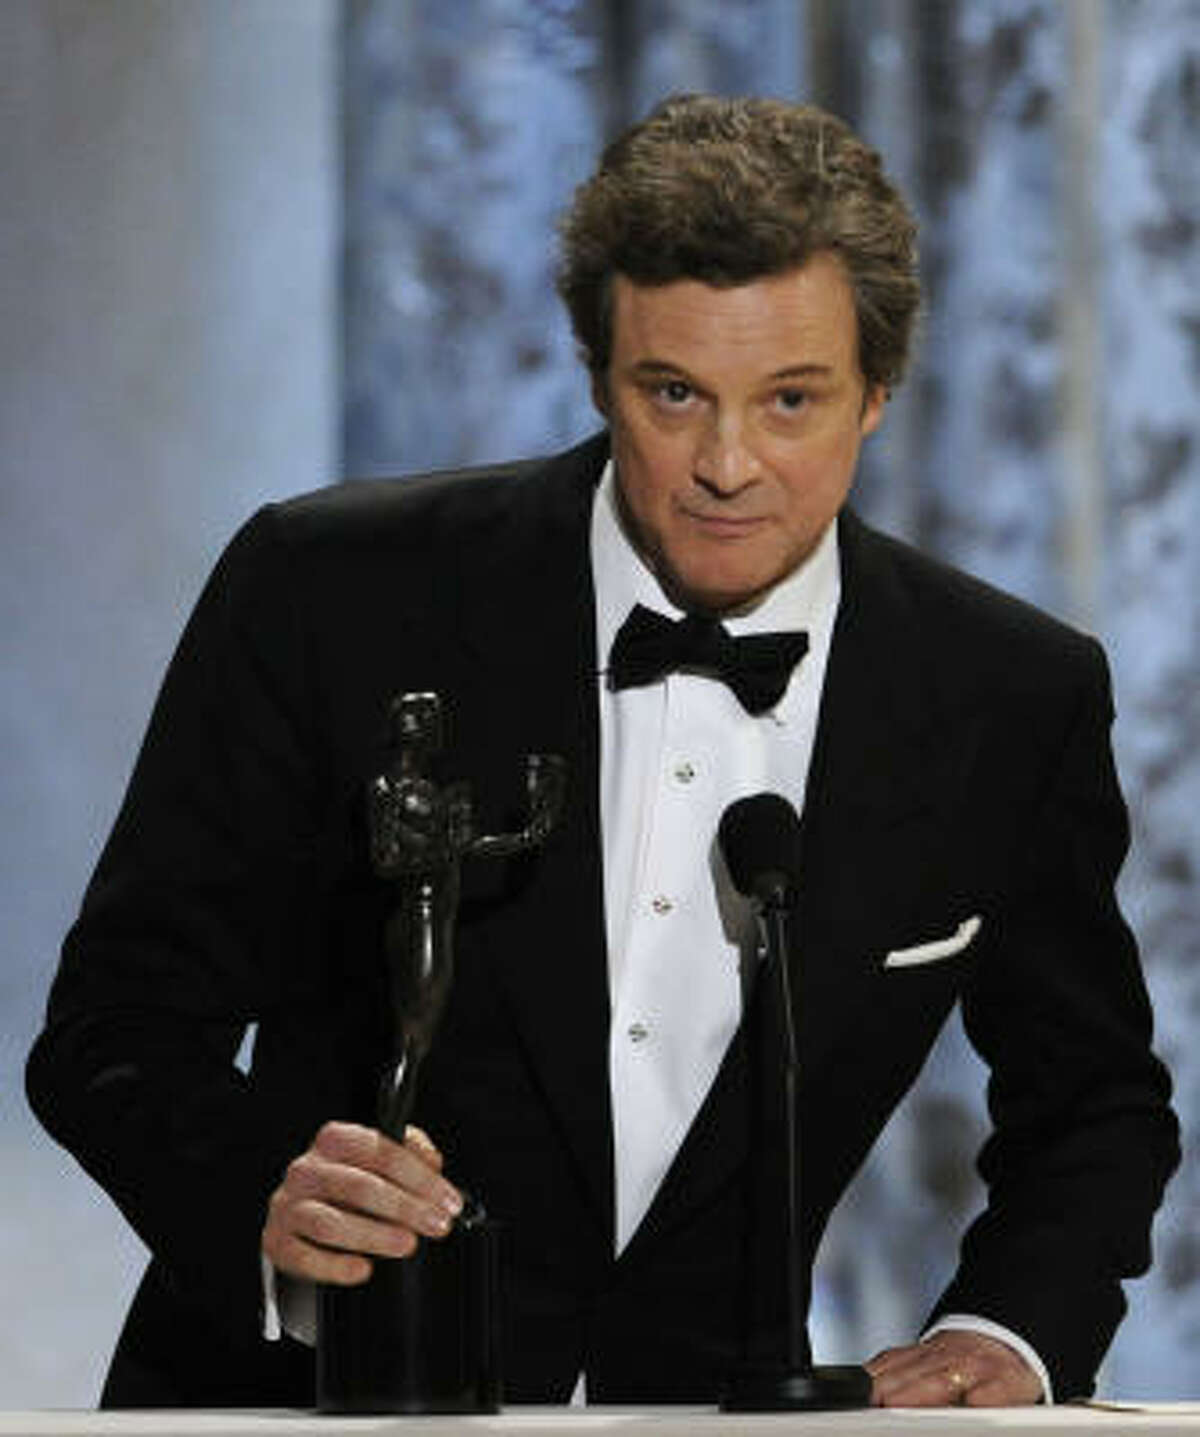 Colin Firth: winner best male actor in a leading role for